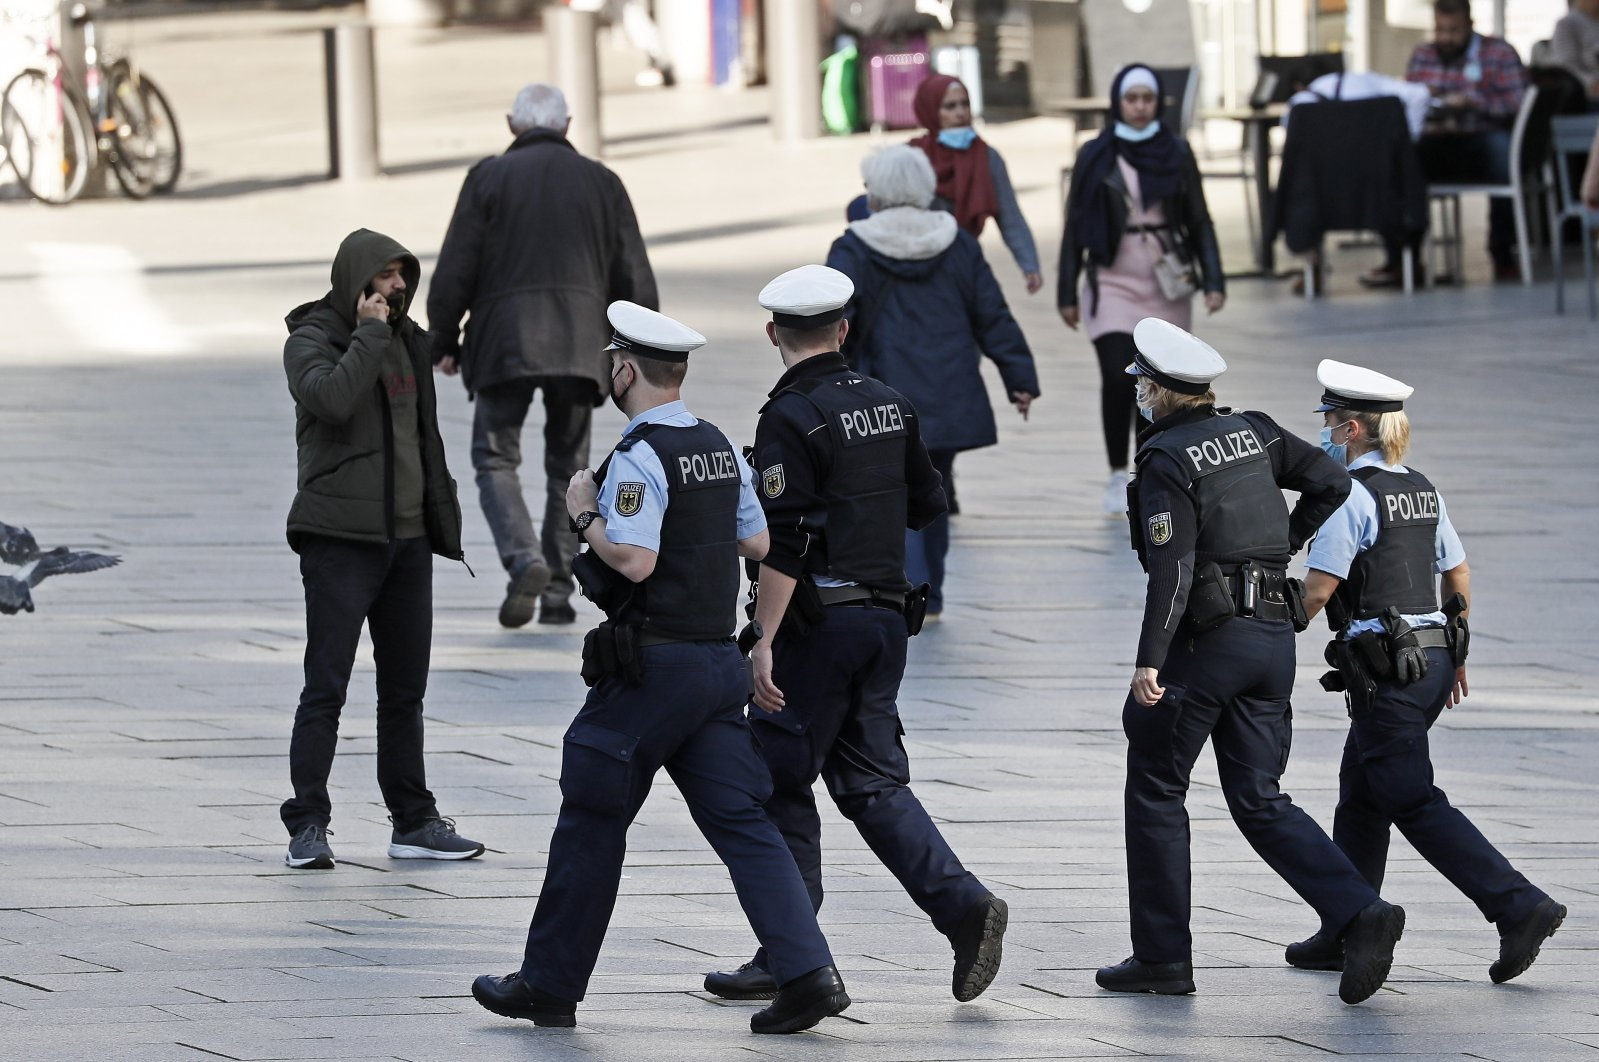 Police officers patrol in a street in Cologne, Germany, where masks are mandatory due to the coronavirus pandemic, Oct. 22, 2020. (AP Photo)